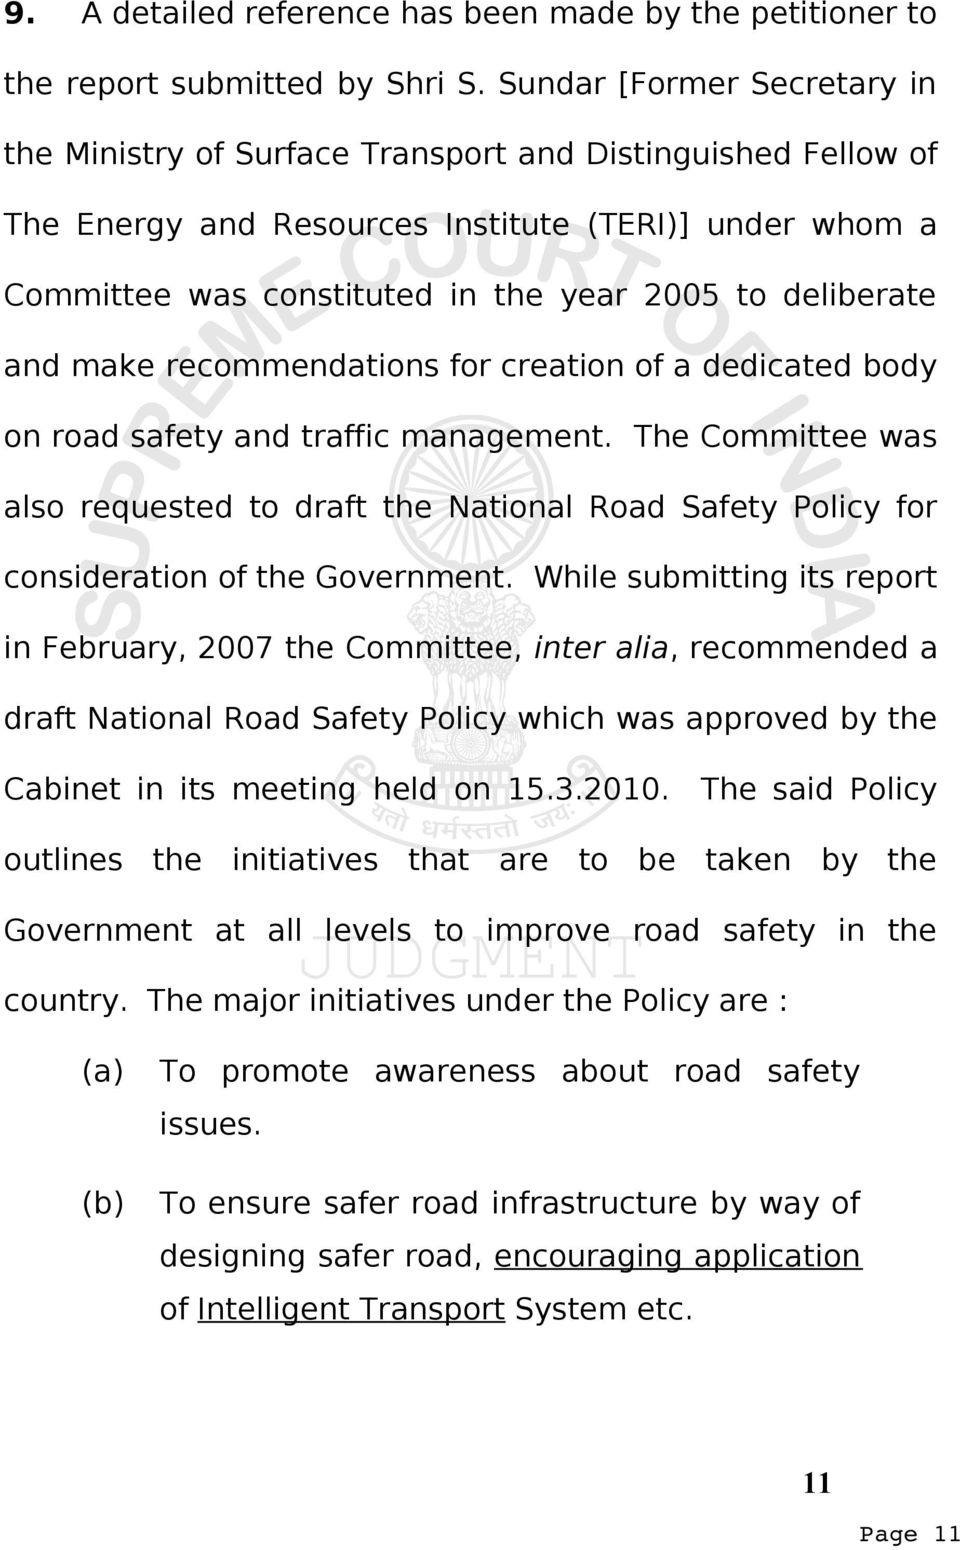 deliberate and make recommendations for creation of a dedicated body on road safety and traffic management.